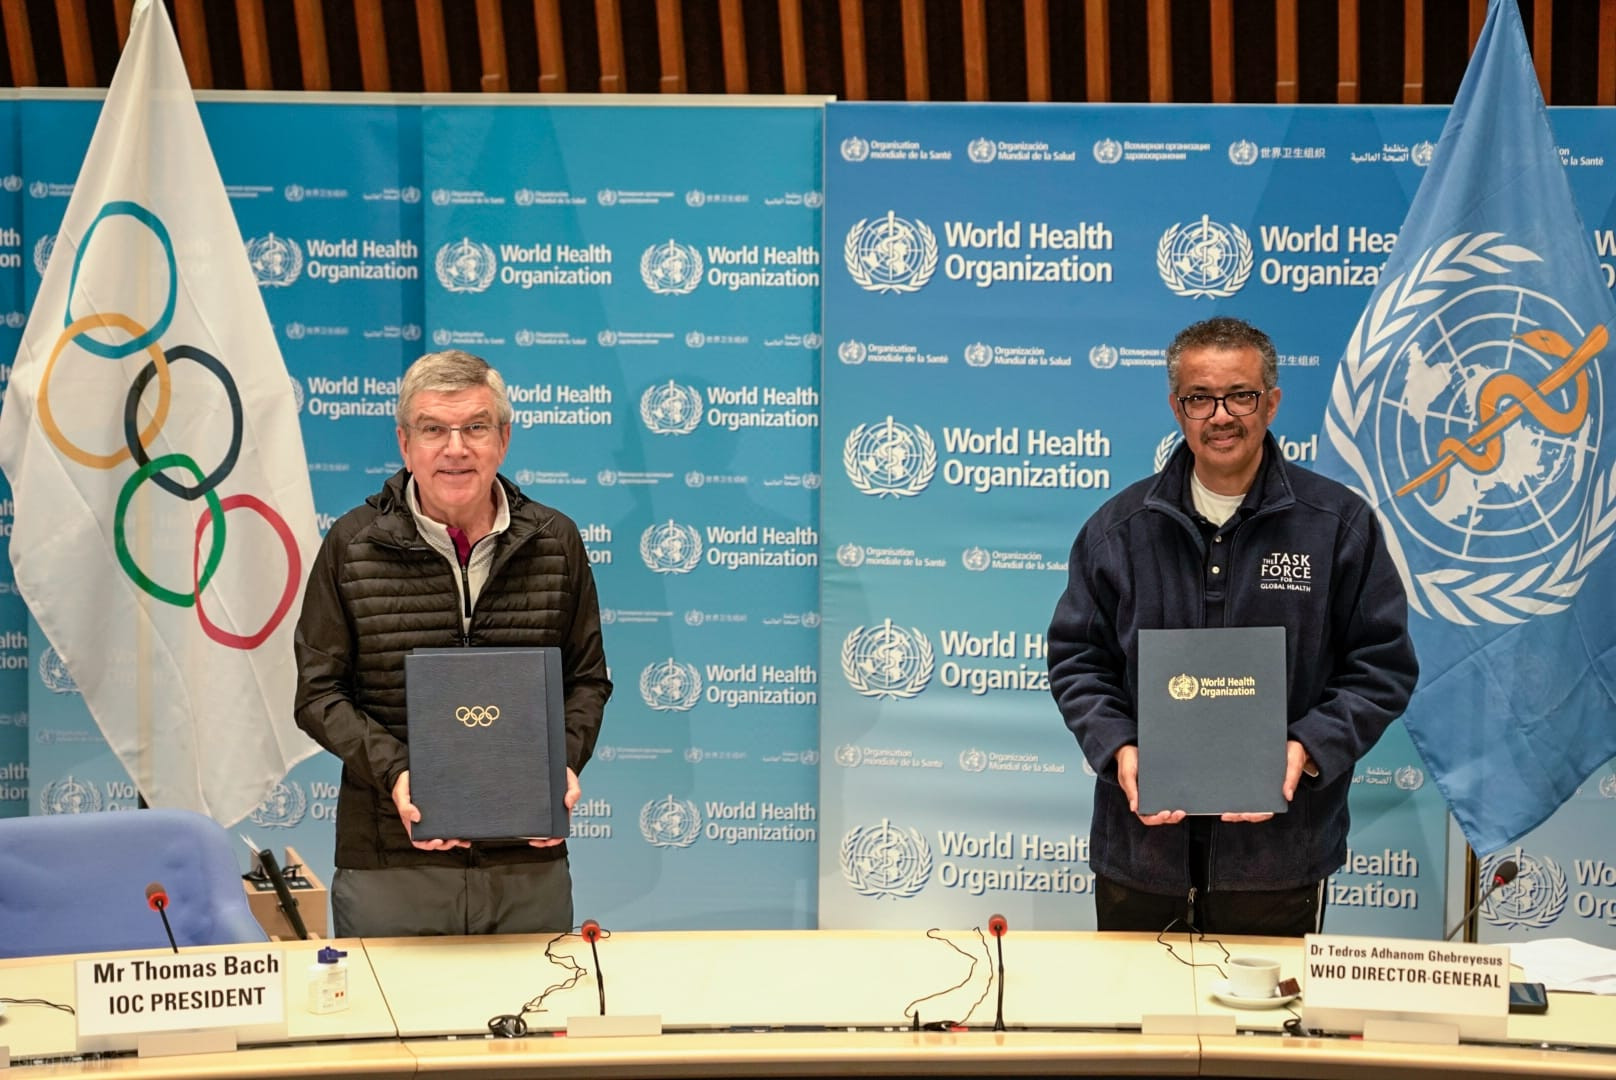 IOC President Thomas Bach and WHO director general Tedros Adhanom Ghebreyesus signed a new Memorandum of Understanding ©IOC